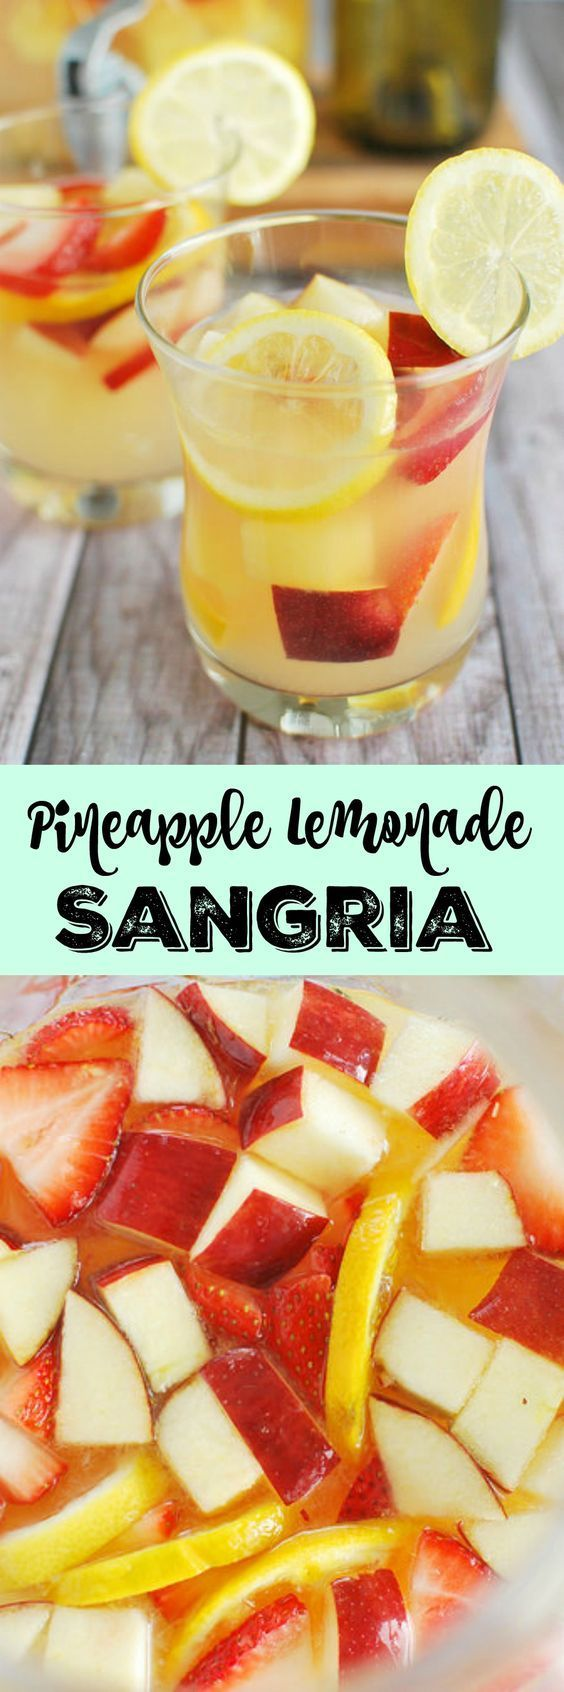 White wines white sangria and summer on pinterest for Cocktail recipes with white wine